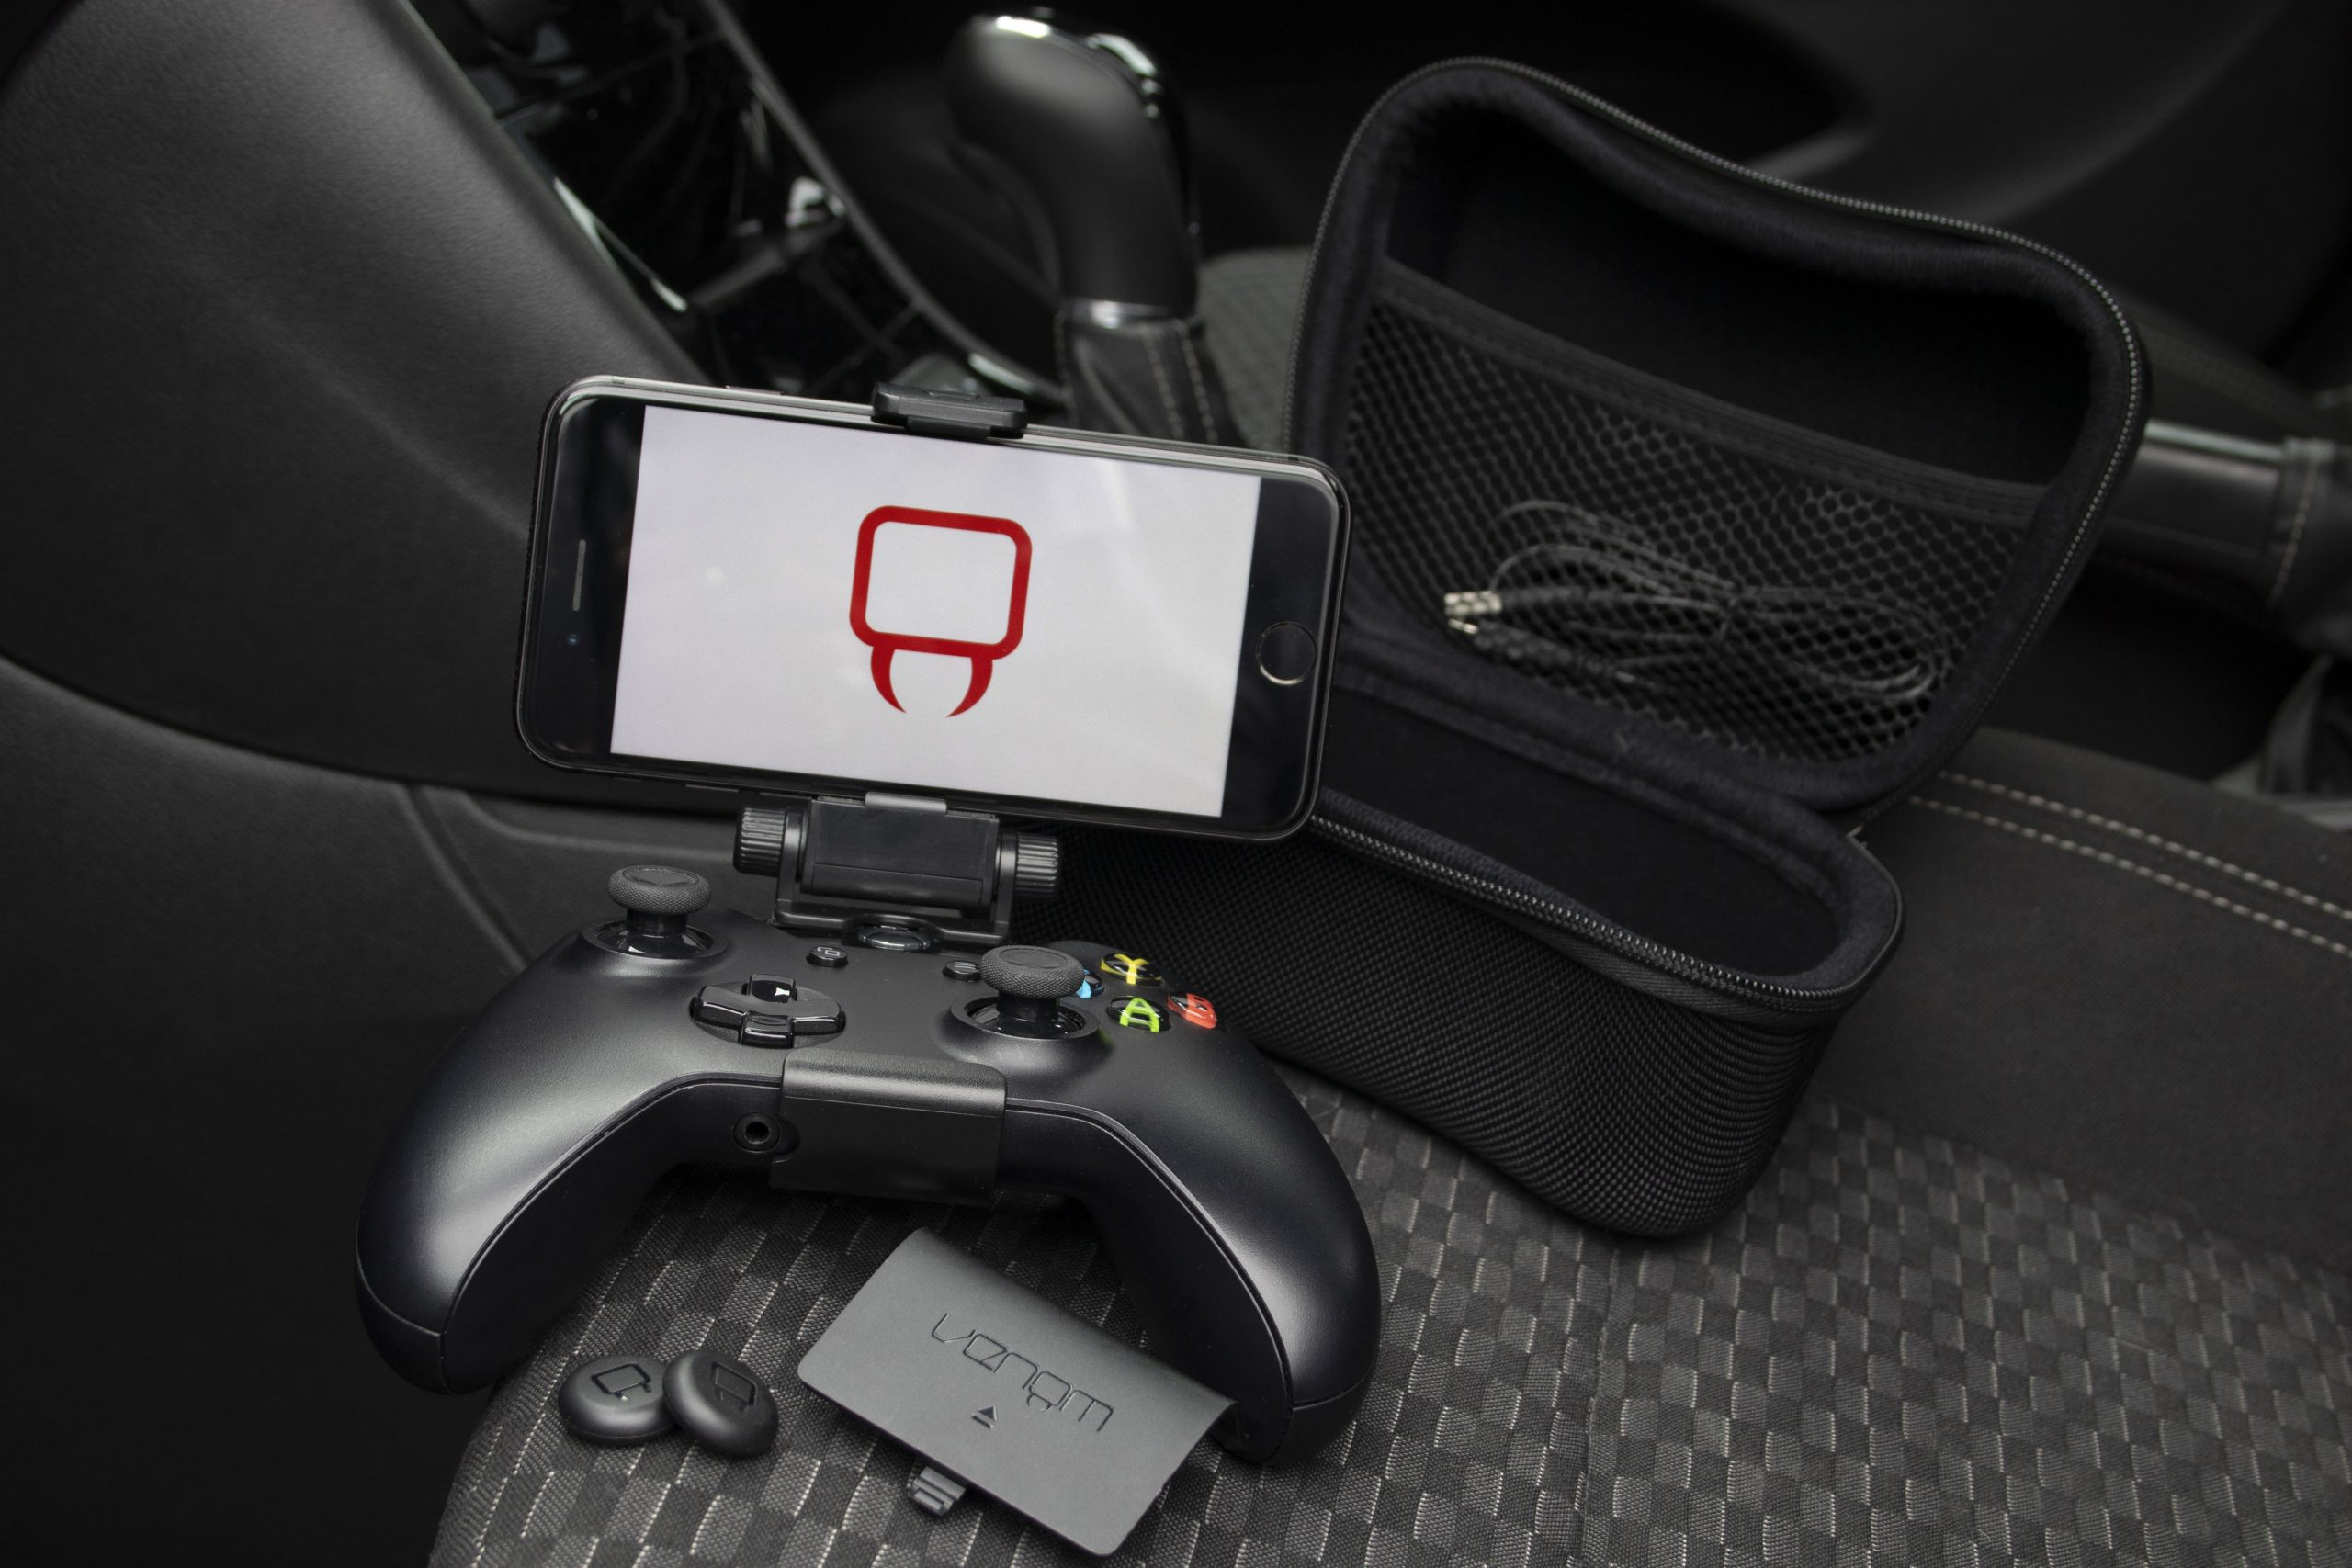 Venom Xbox One Travel Kit for Xbox One showing phone mounted to controller